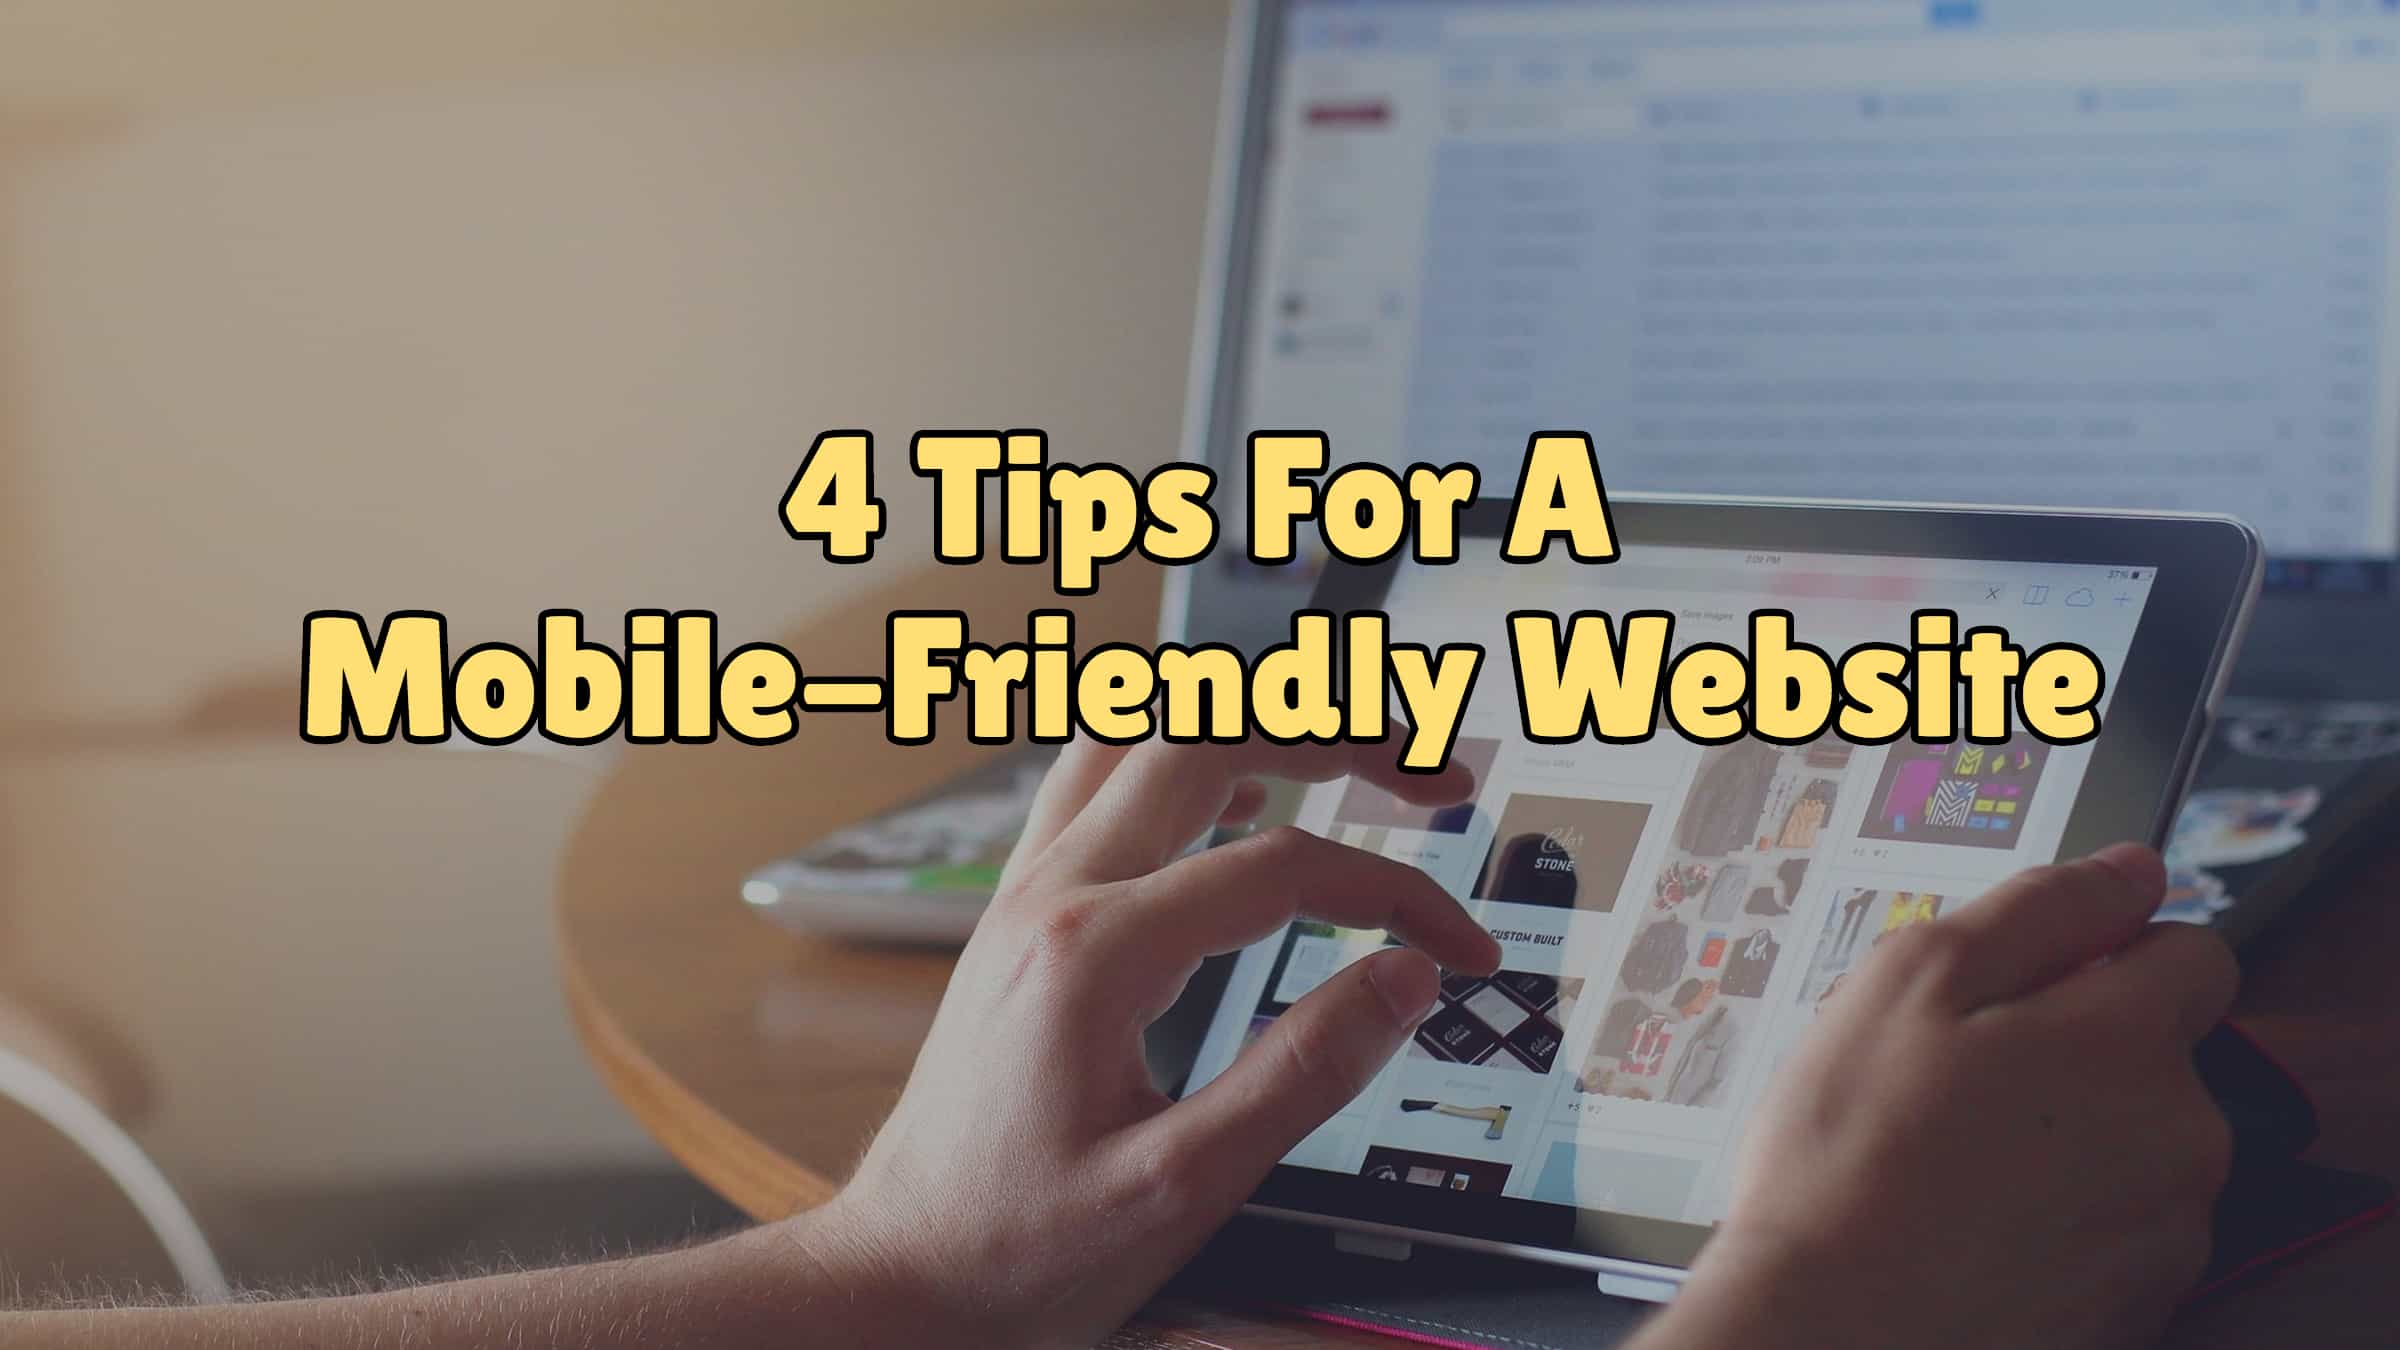 4 Tips For A Mobile-Friendly Website